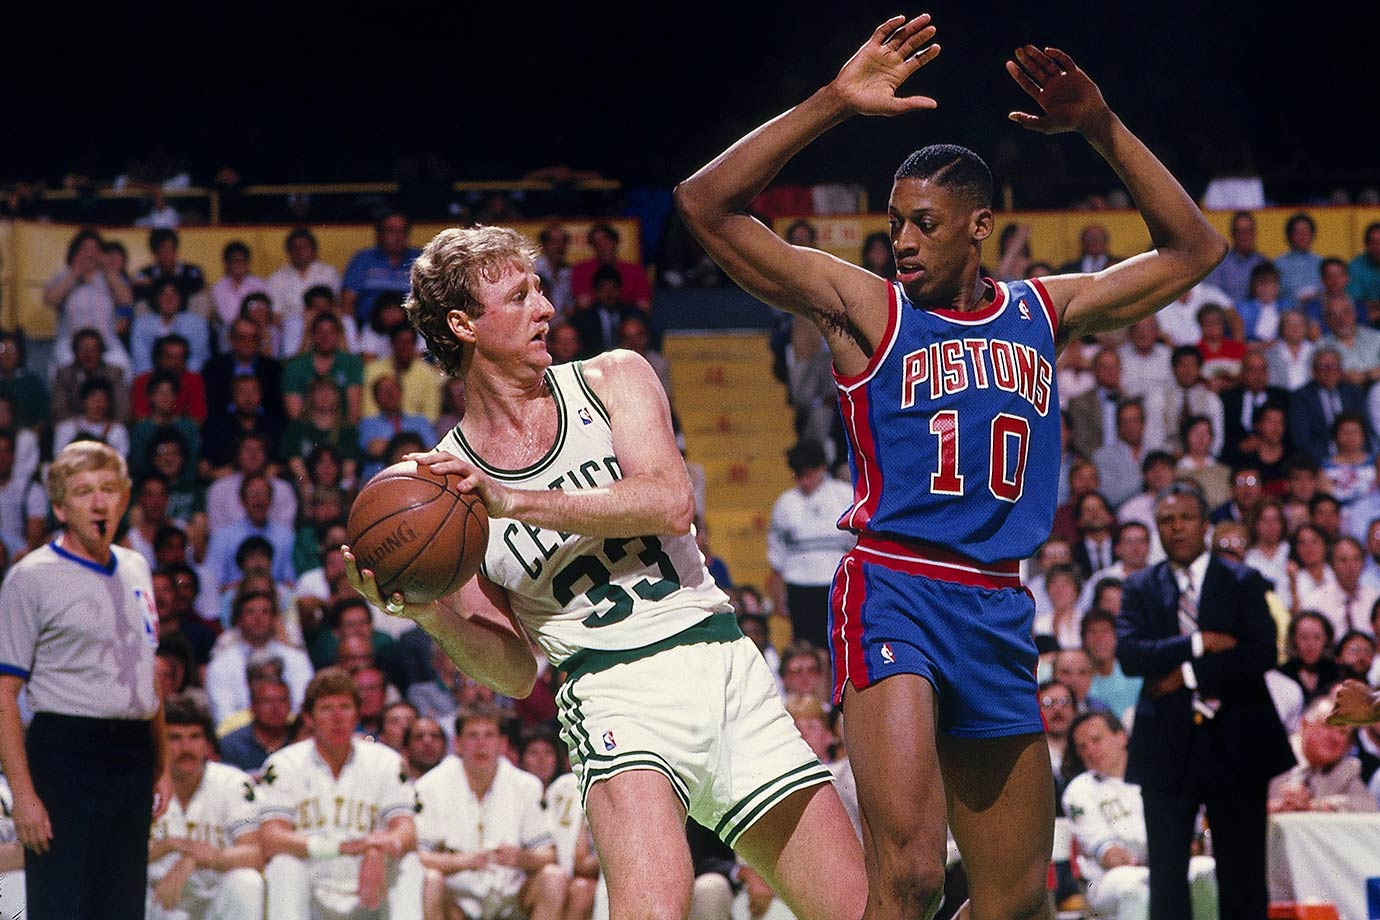 May 26, 1987 — Eastern Conference Finals, Game 5